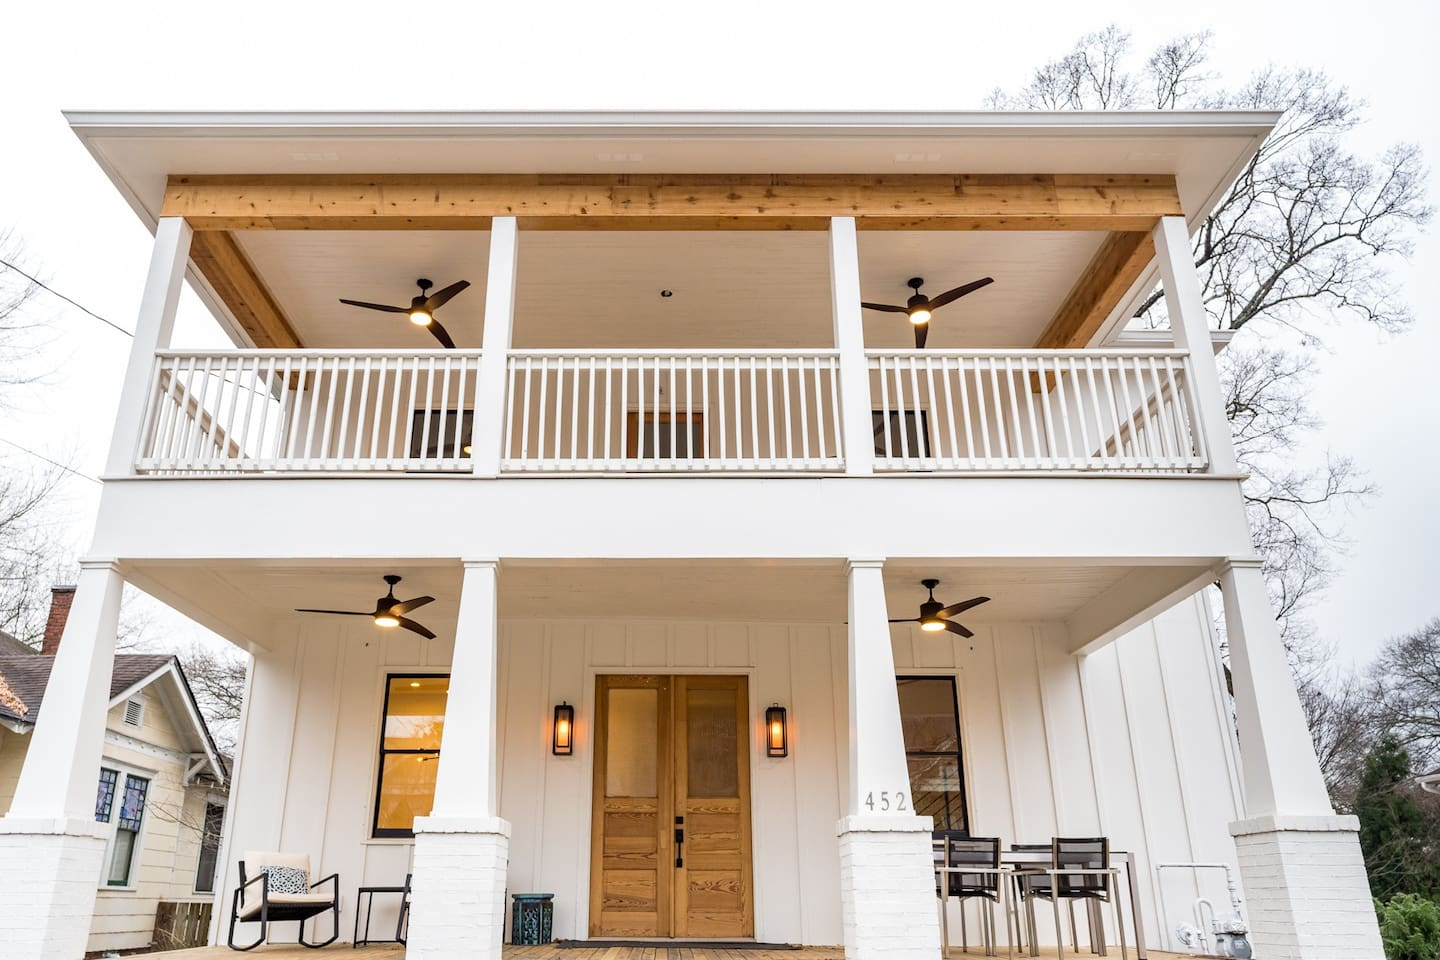 Come enjoy yourself at our modern farmhouse in the city!  It's so peaceful yet so close to all Atlanta has to offer!